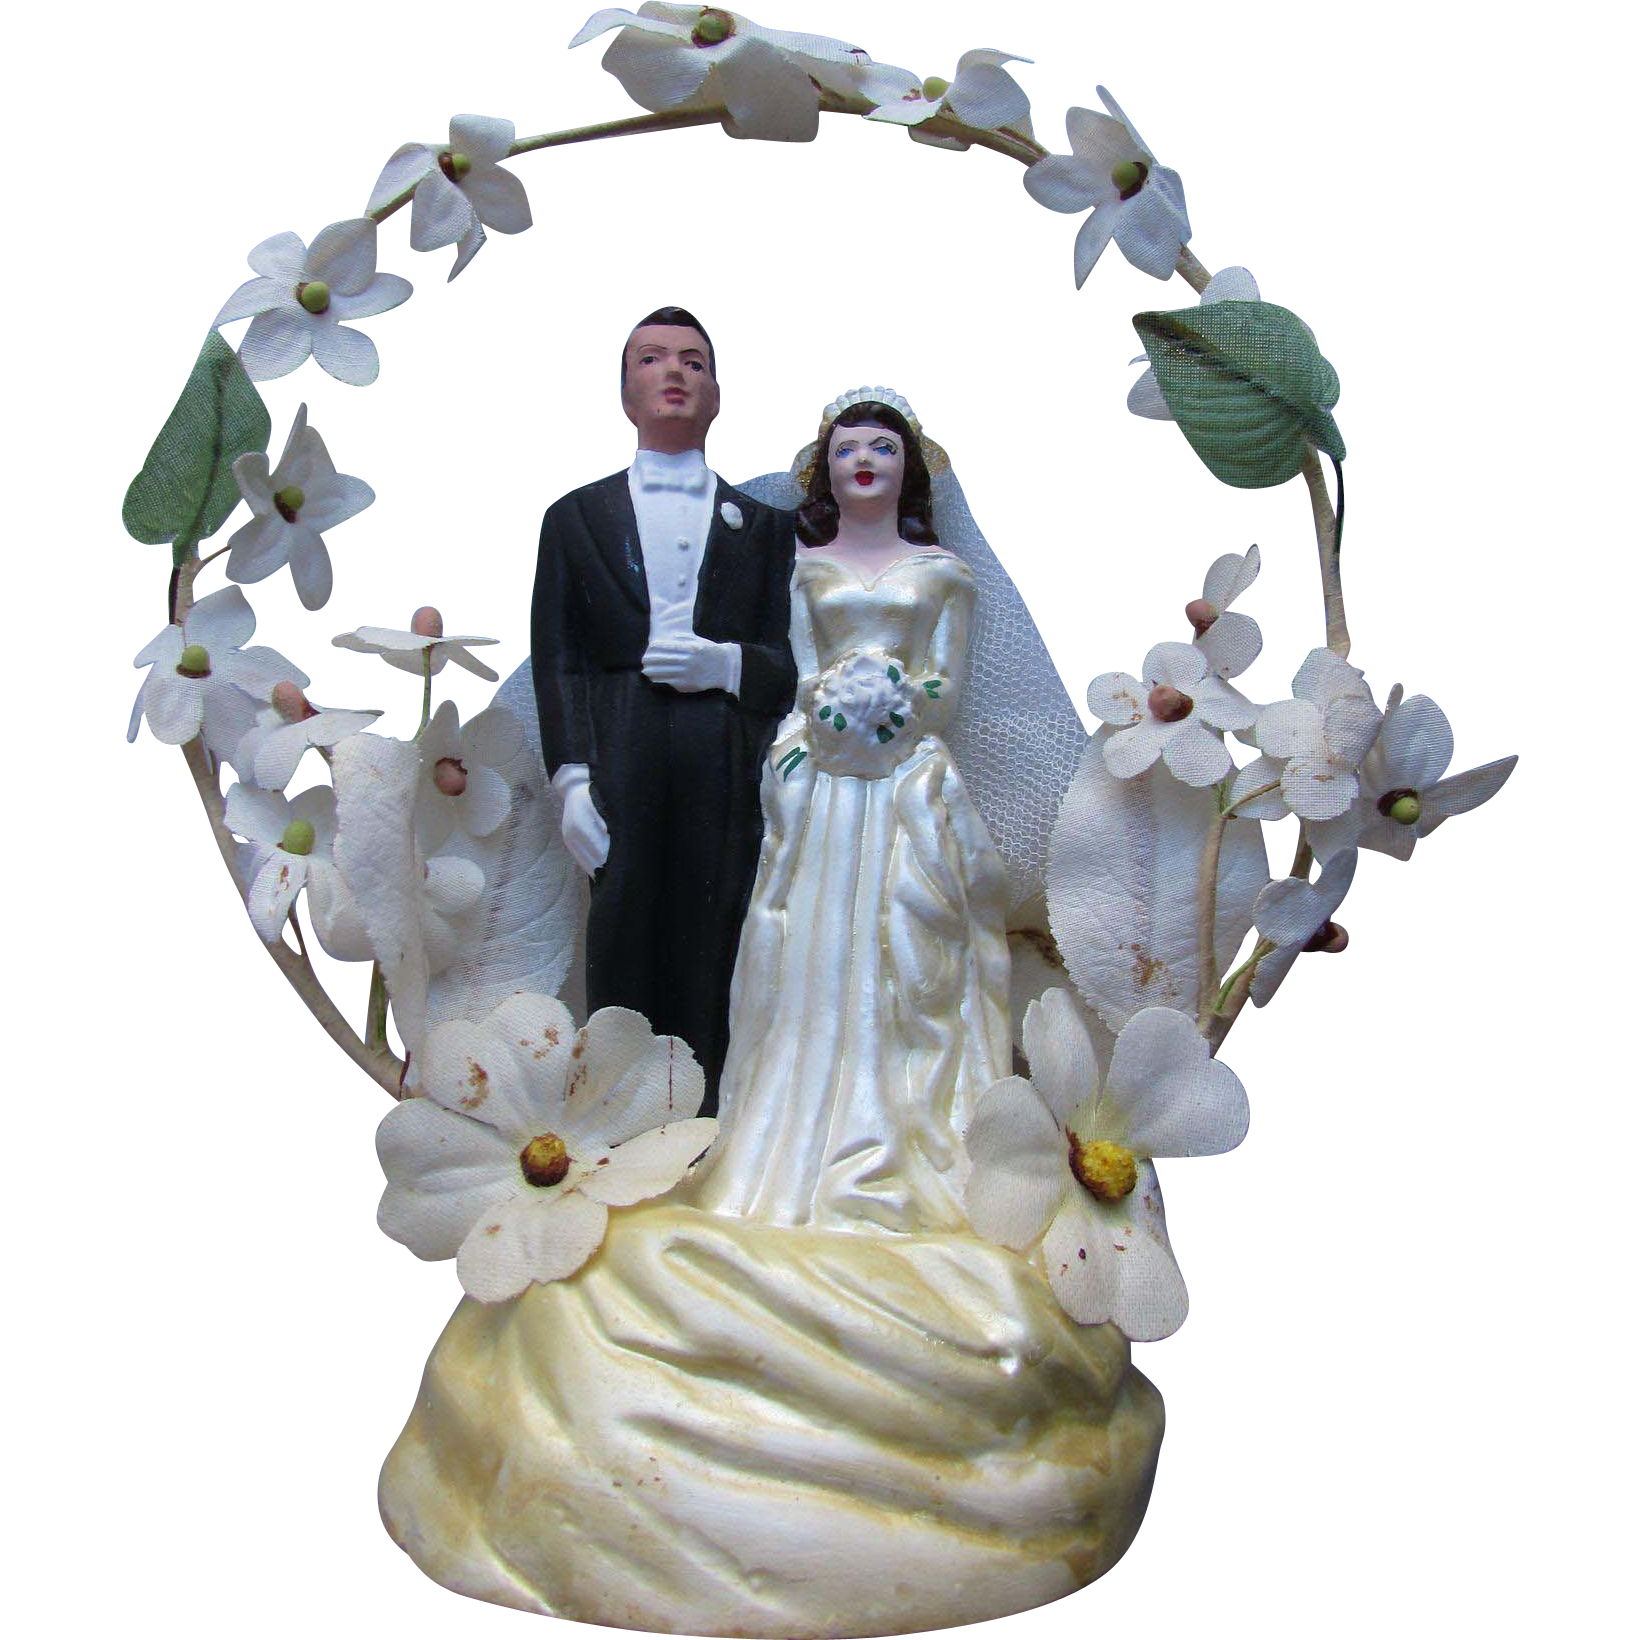 Vintage Wedding Cake Topper Bride and Groom with Flowered Arch in Plaster 1940/1950 Style